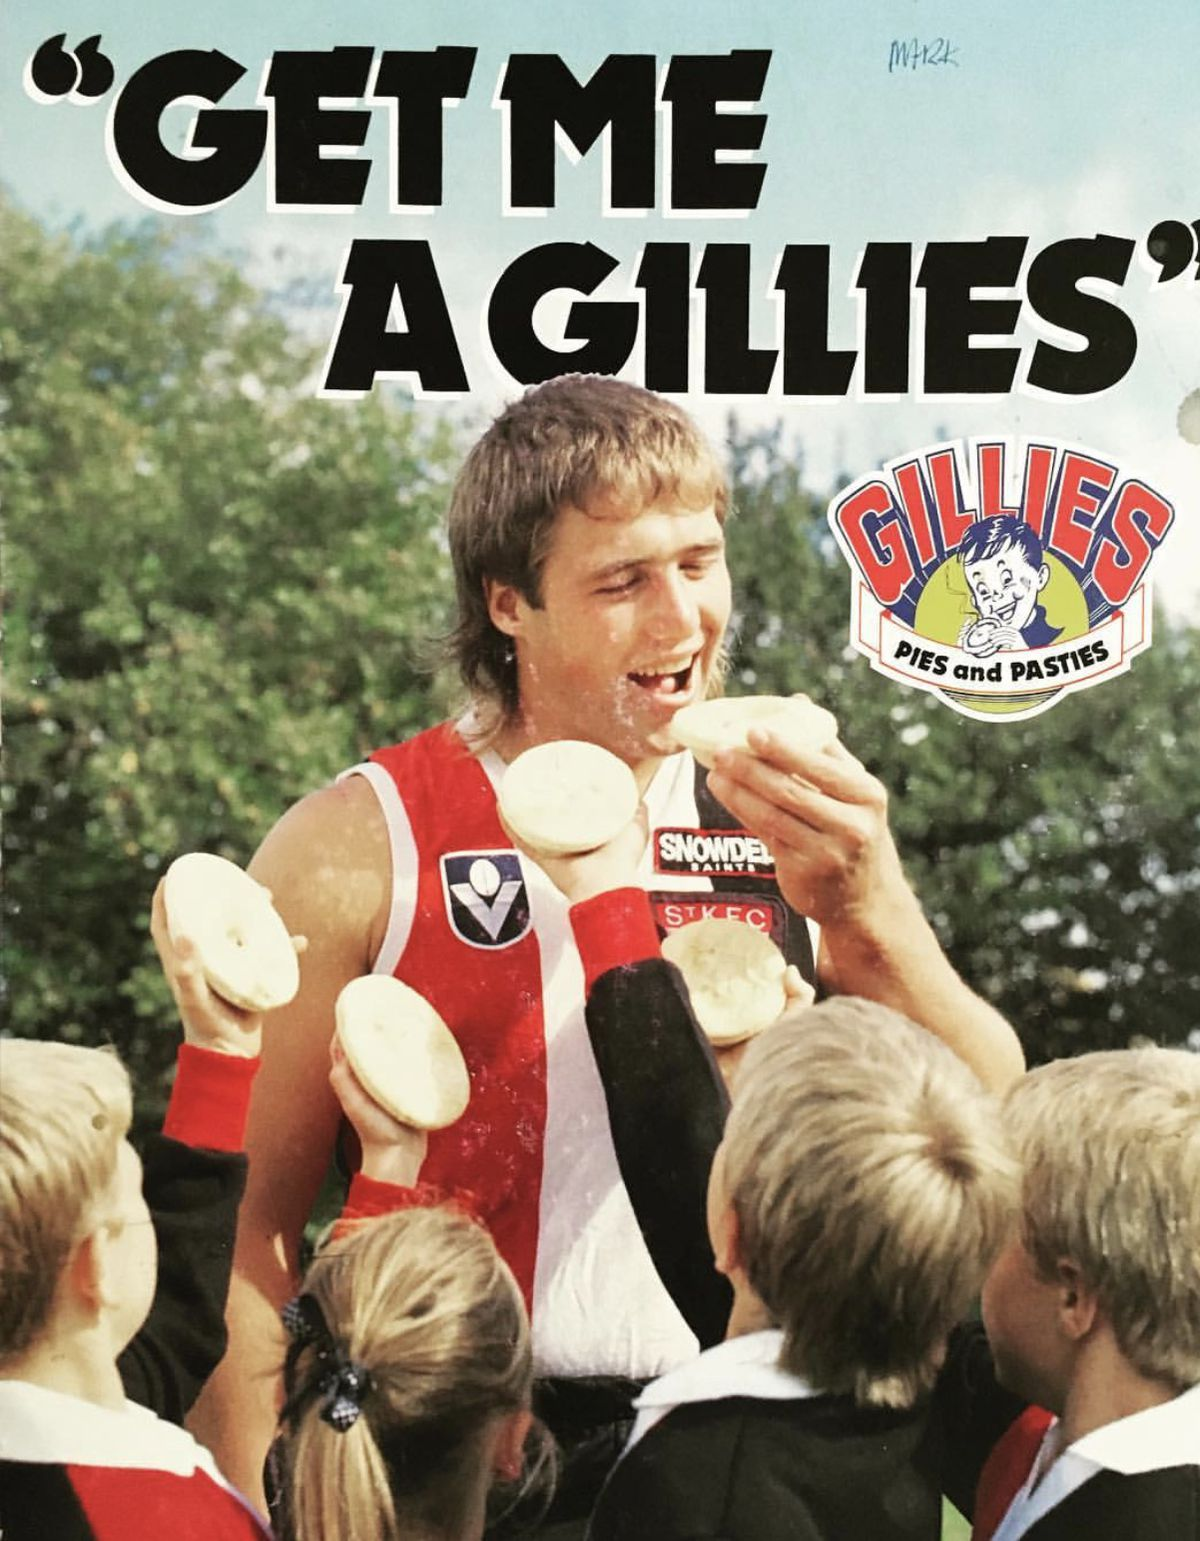 Tony Lockett eats a Gilles pie in front of a crowd of young fans